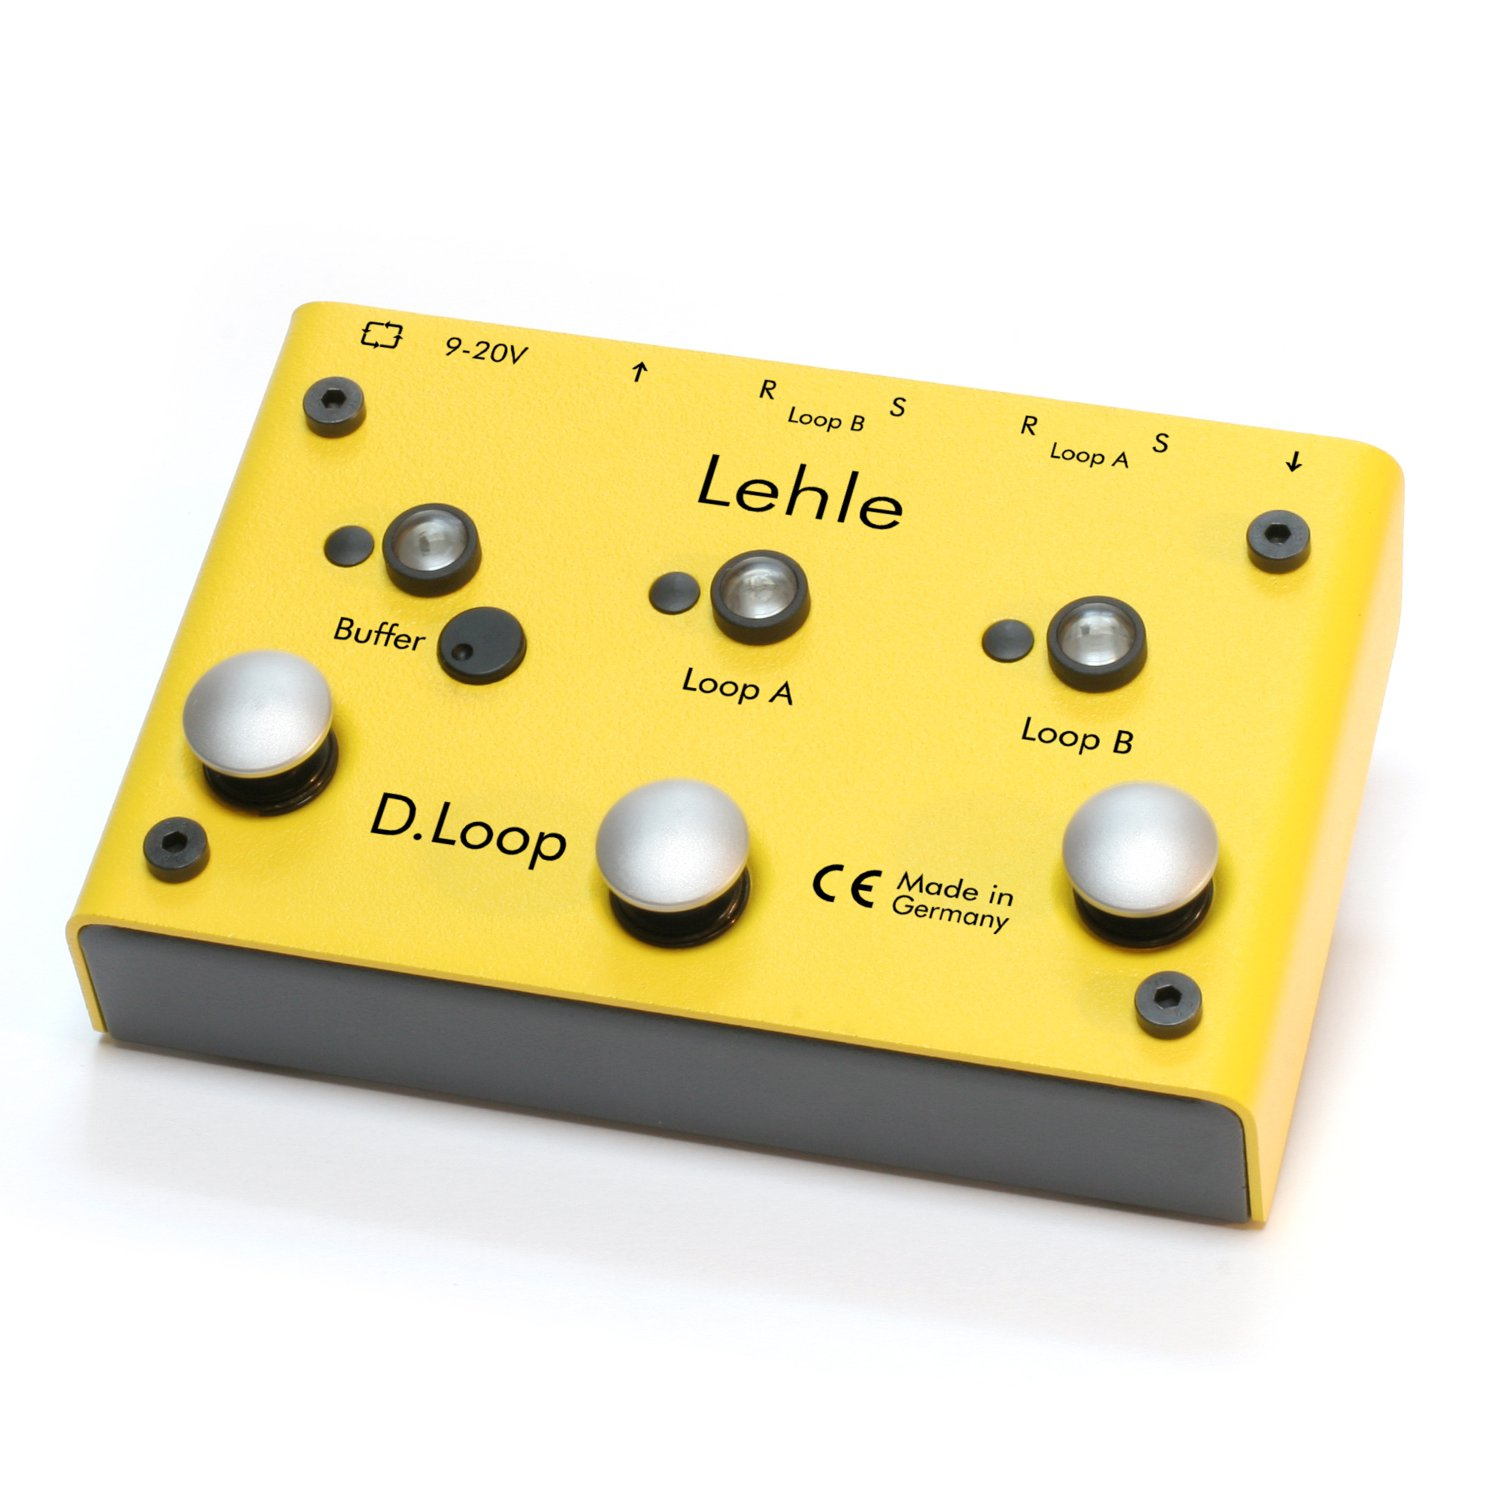 Lehle D.Loop SGoS Switchpedal